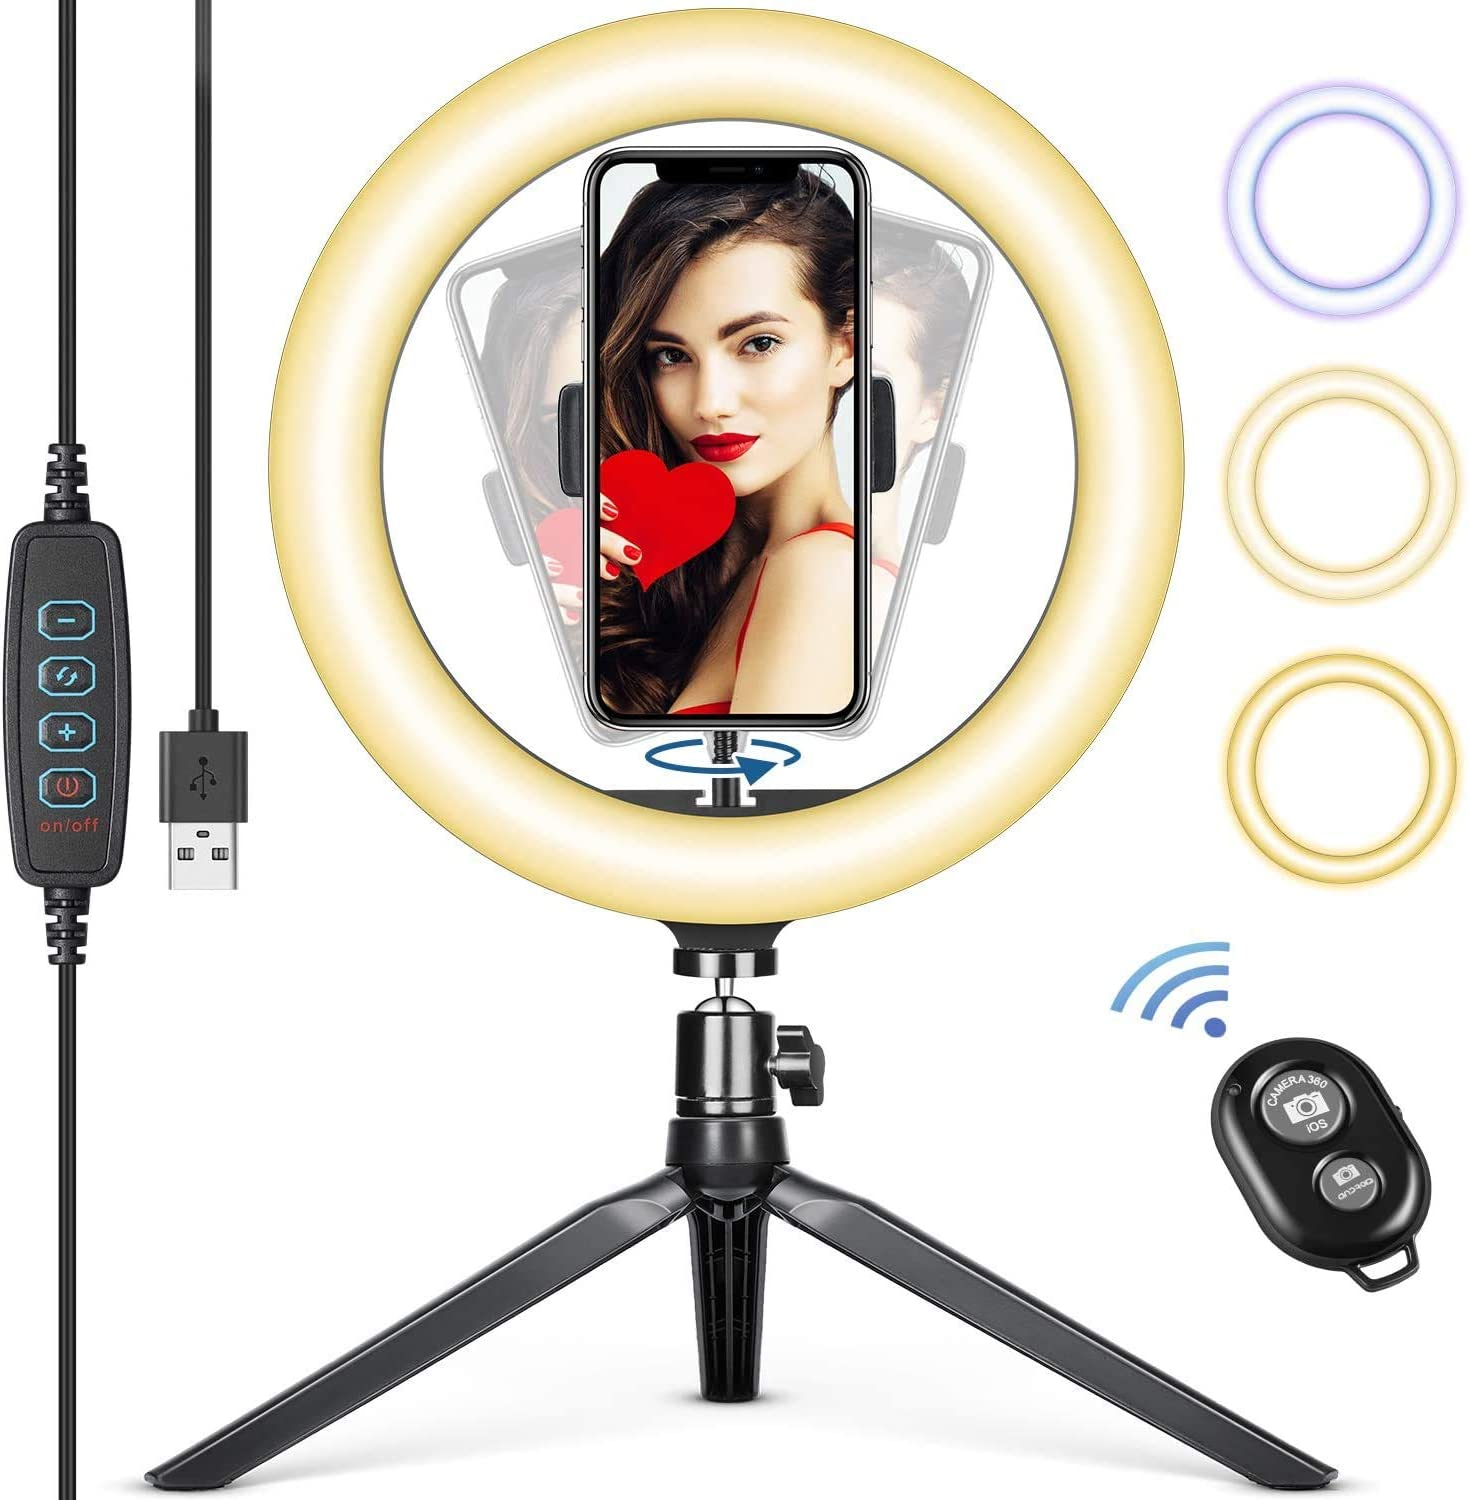 10 inch Selfie Ring Light, Mini Ring Light with Stand Tripod & Flexible Tripod & Remote Control, Desktop Ring Light for Makeup, YouTube, Facebook, Selfie, Making Videos (10 inch)